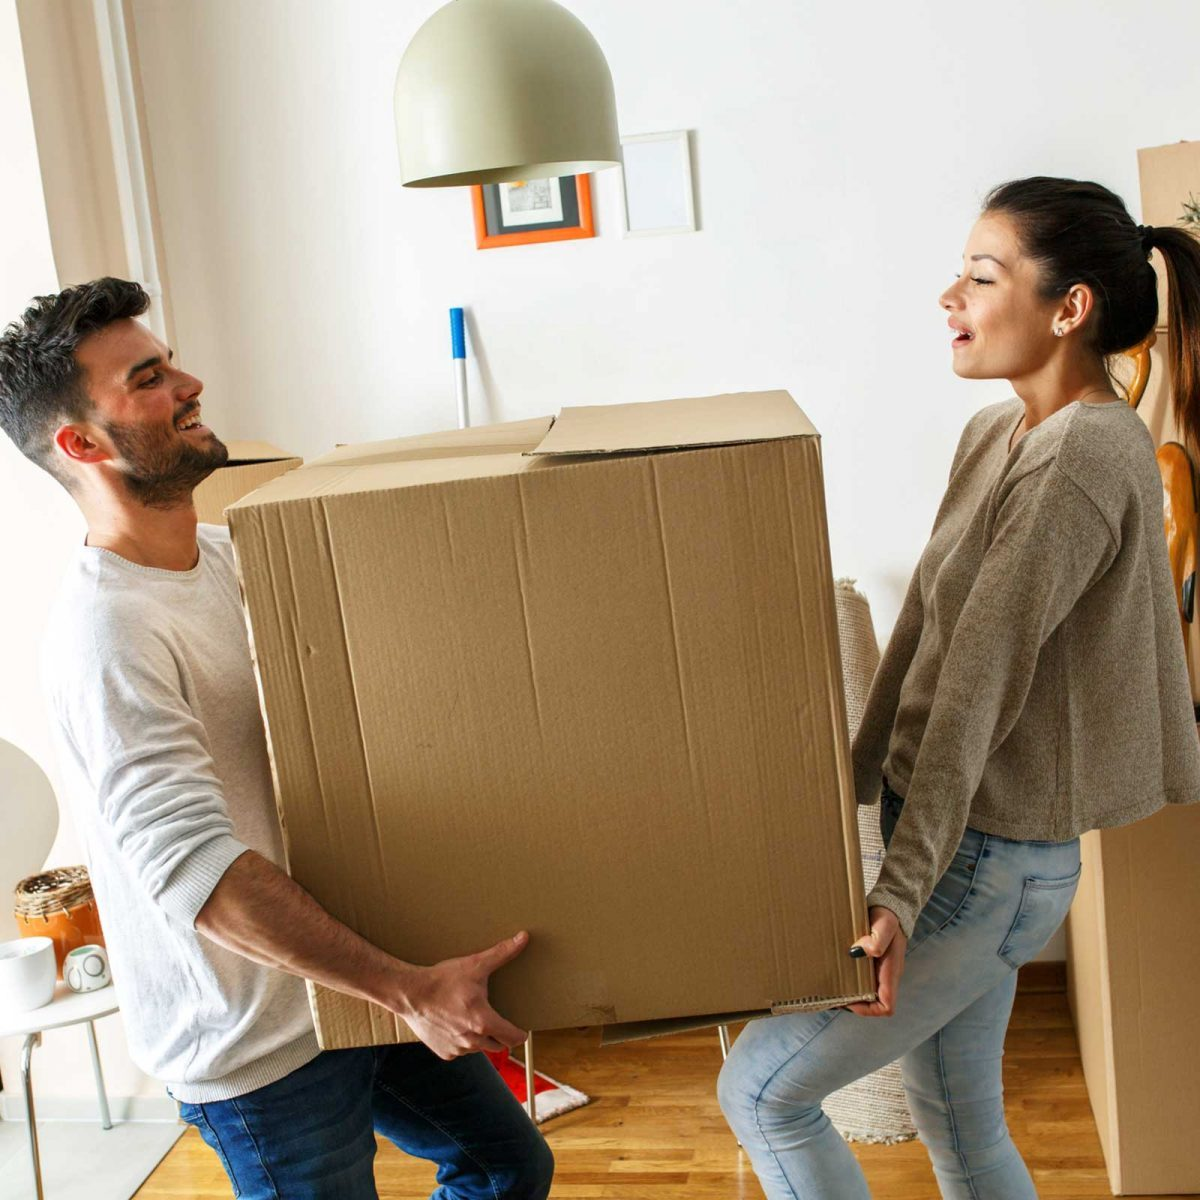 15 Packing Tips for Moving You'll Wish You Knew Before